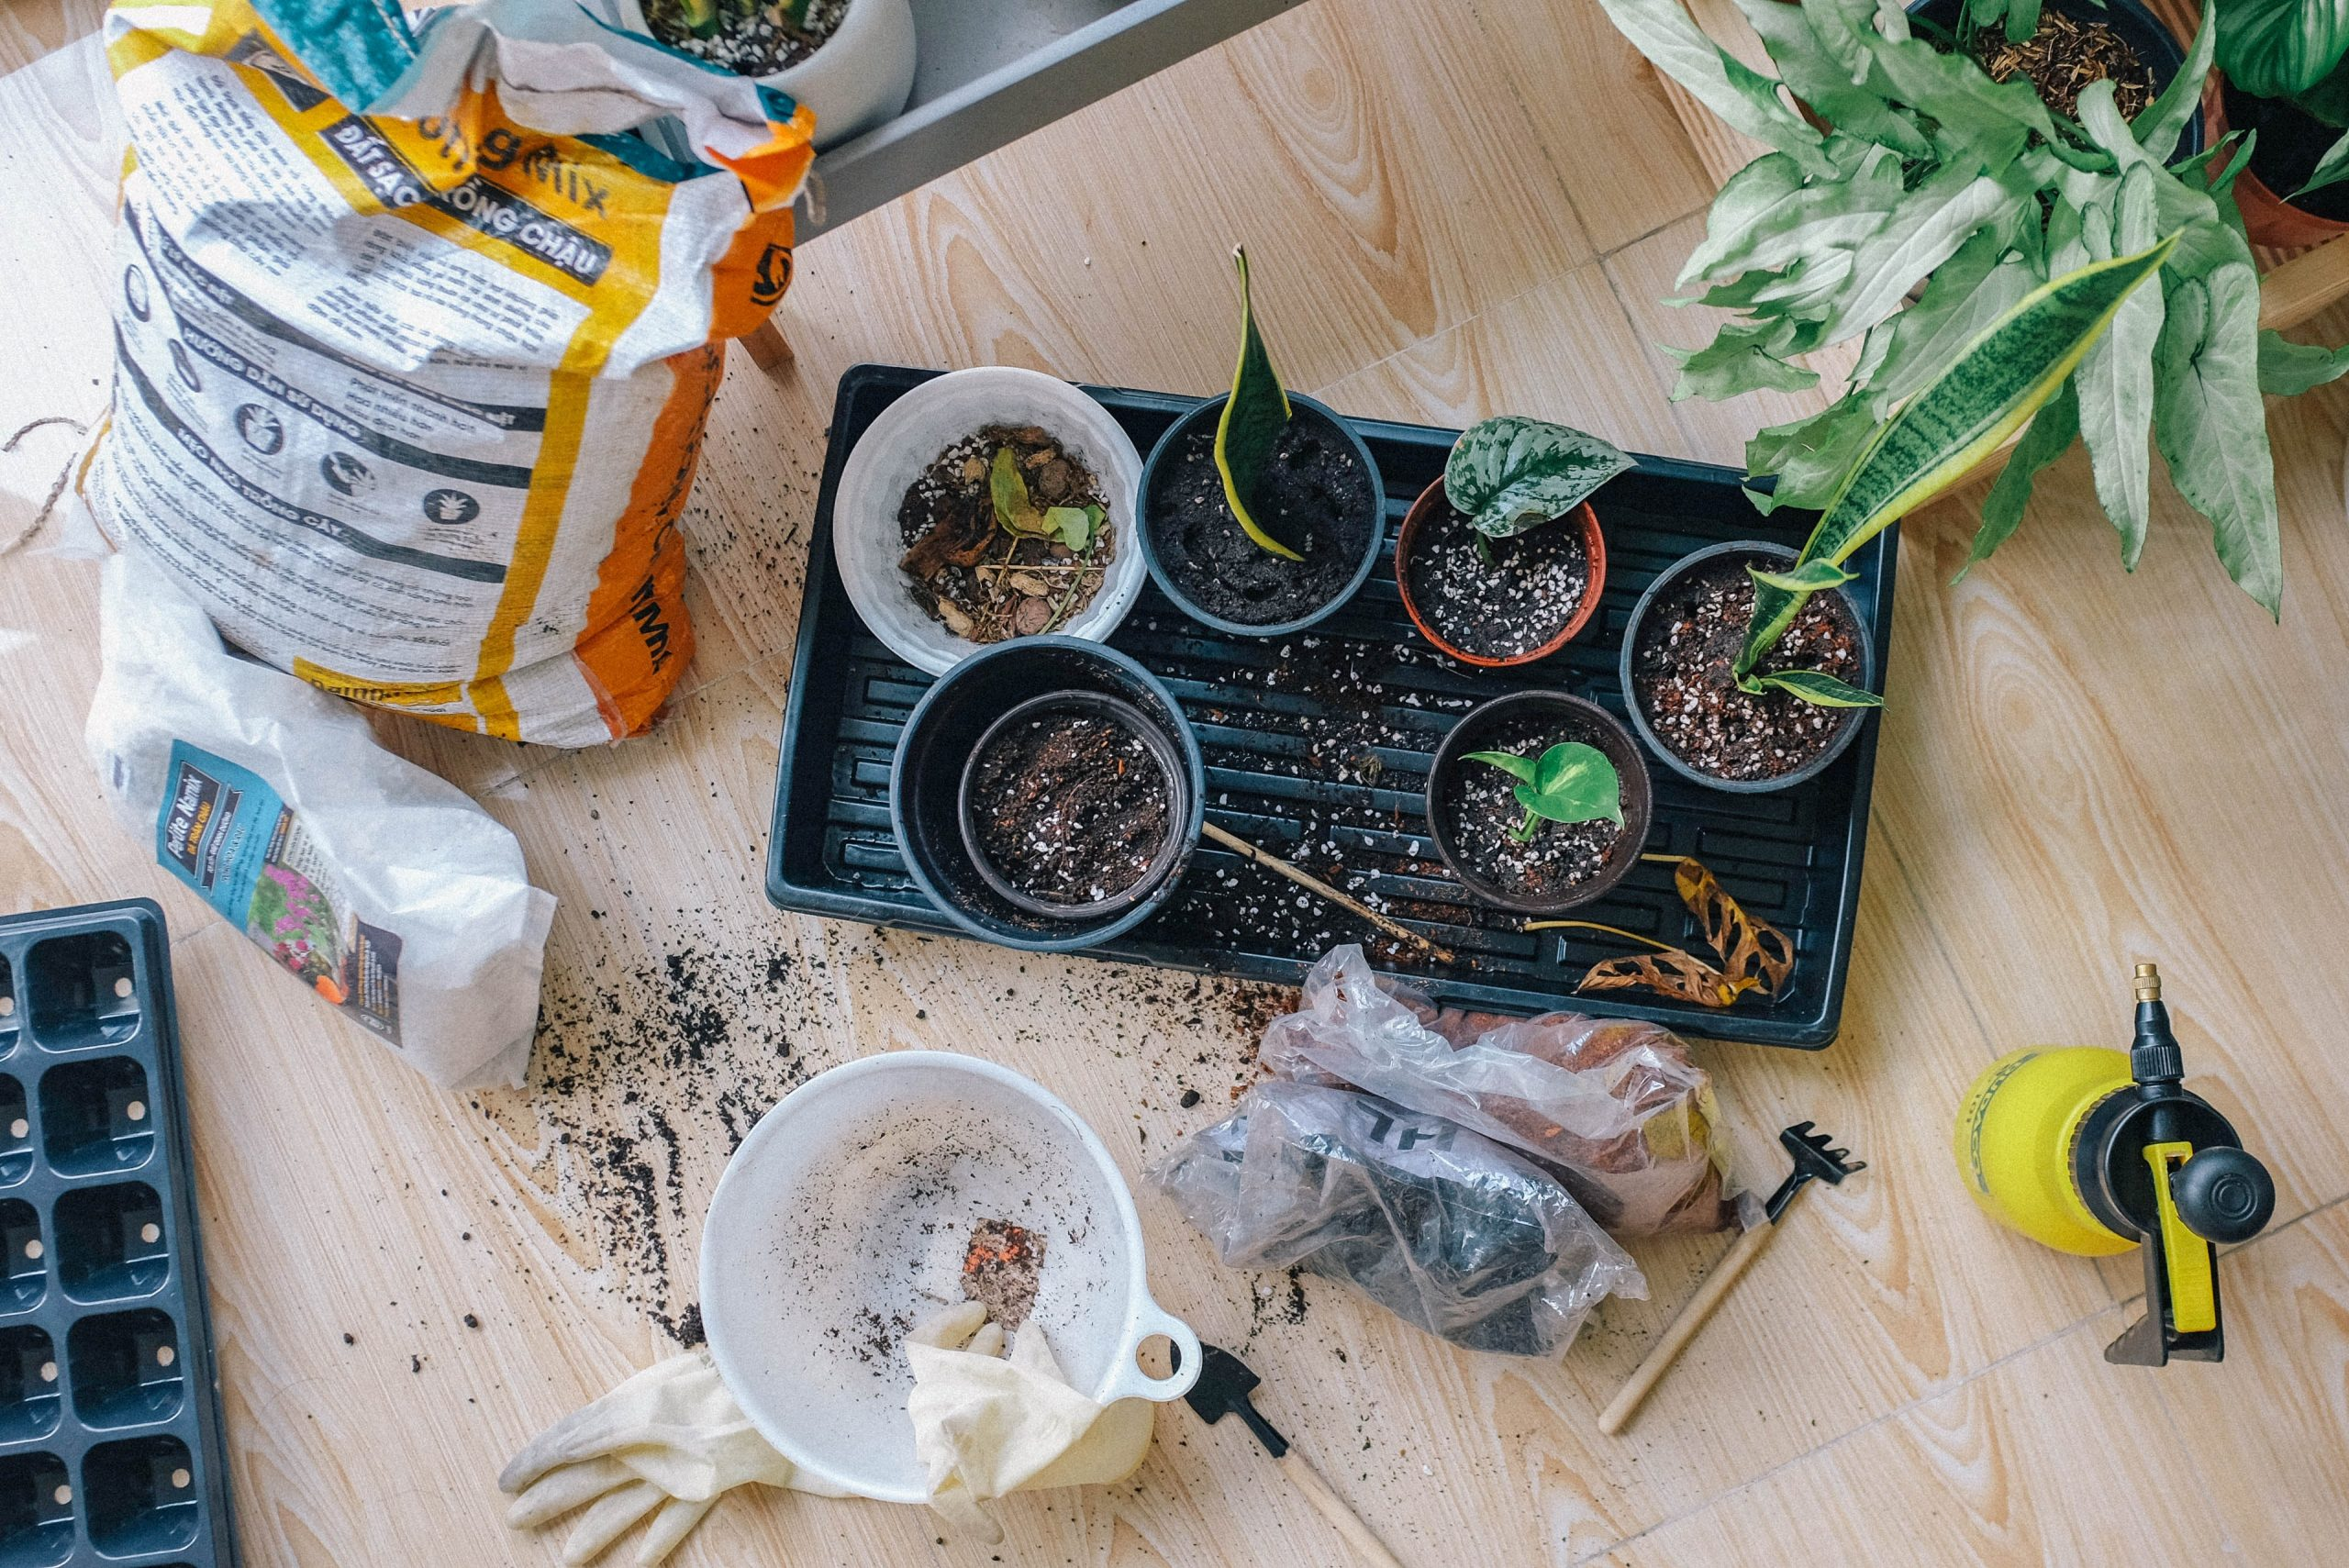 Planting seedlings into pots